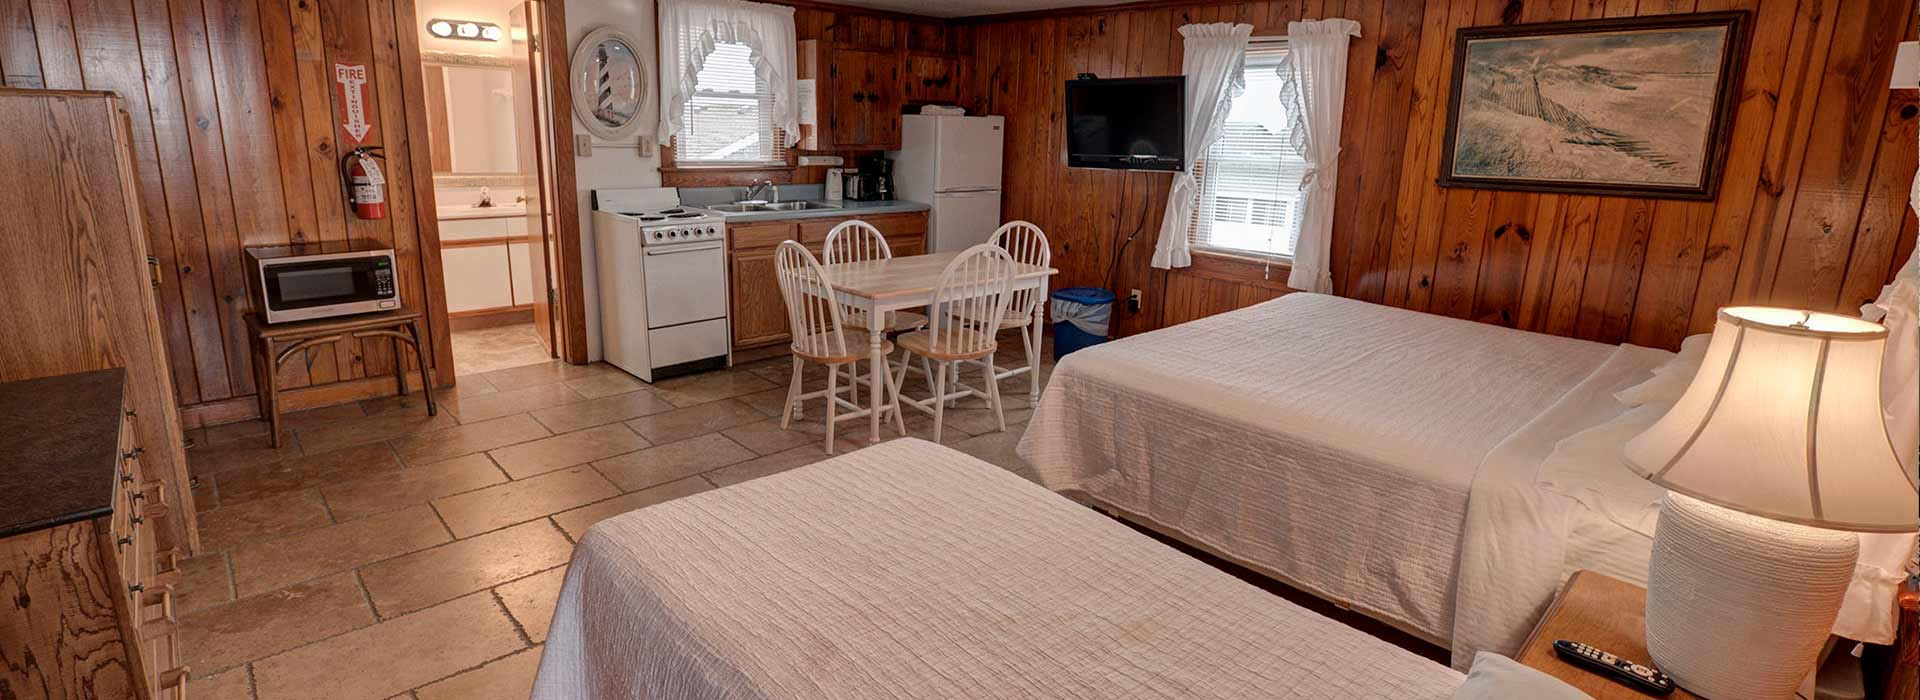 Beach Rooms & Cottages